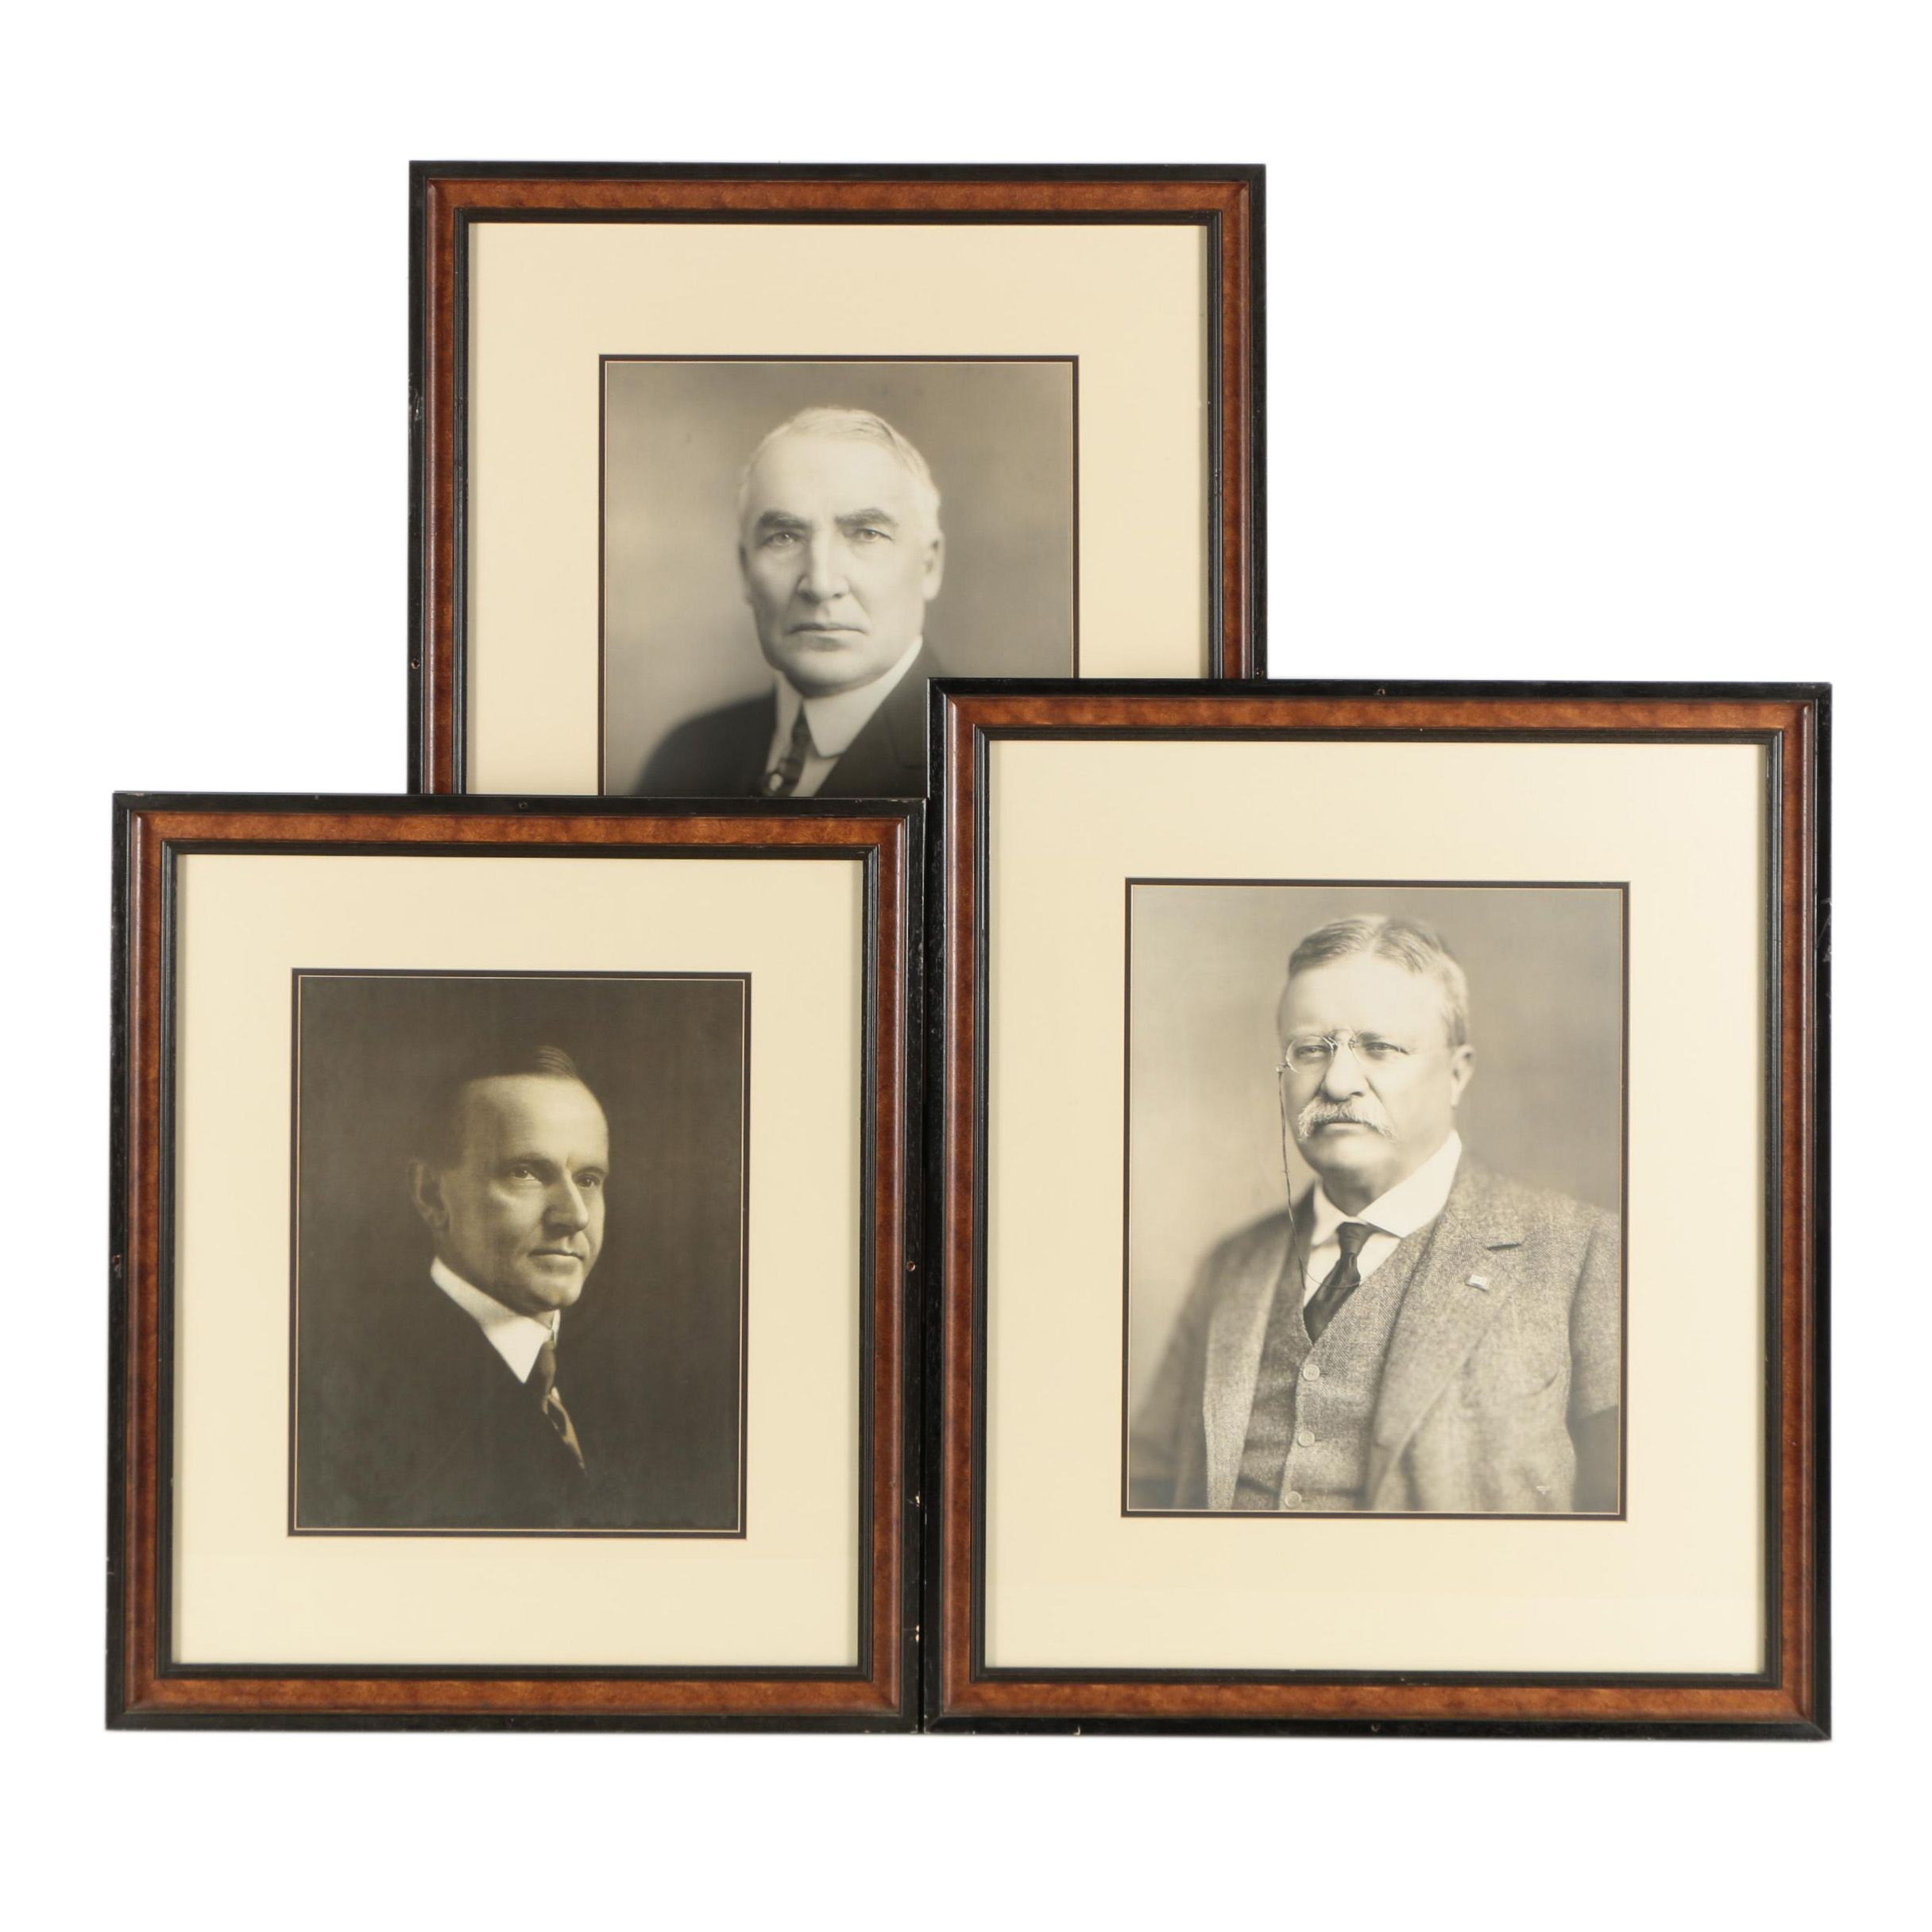 Rotogravure and Albumen Photograph of Past Presidents